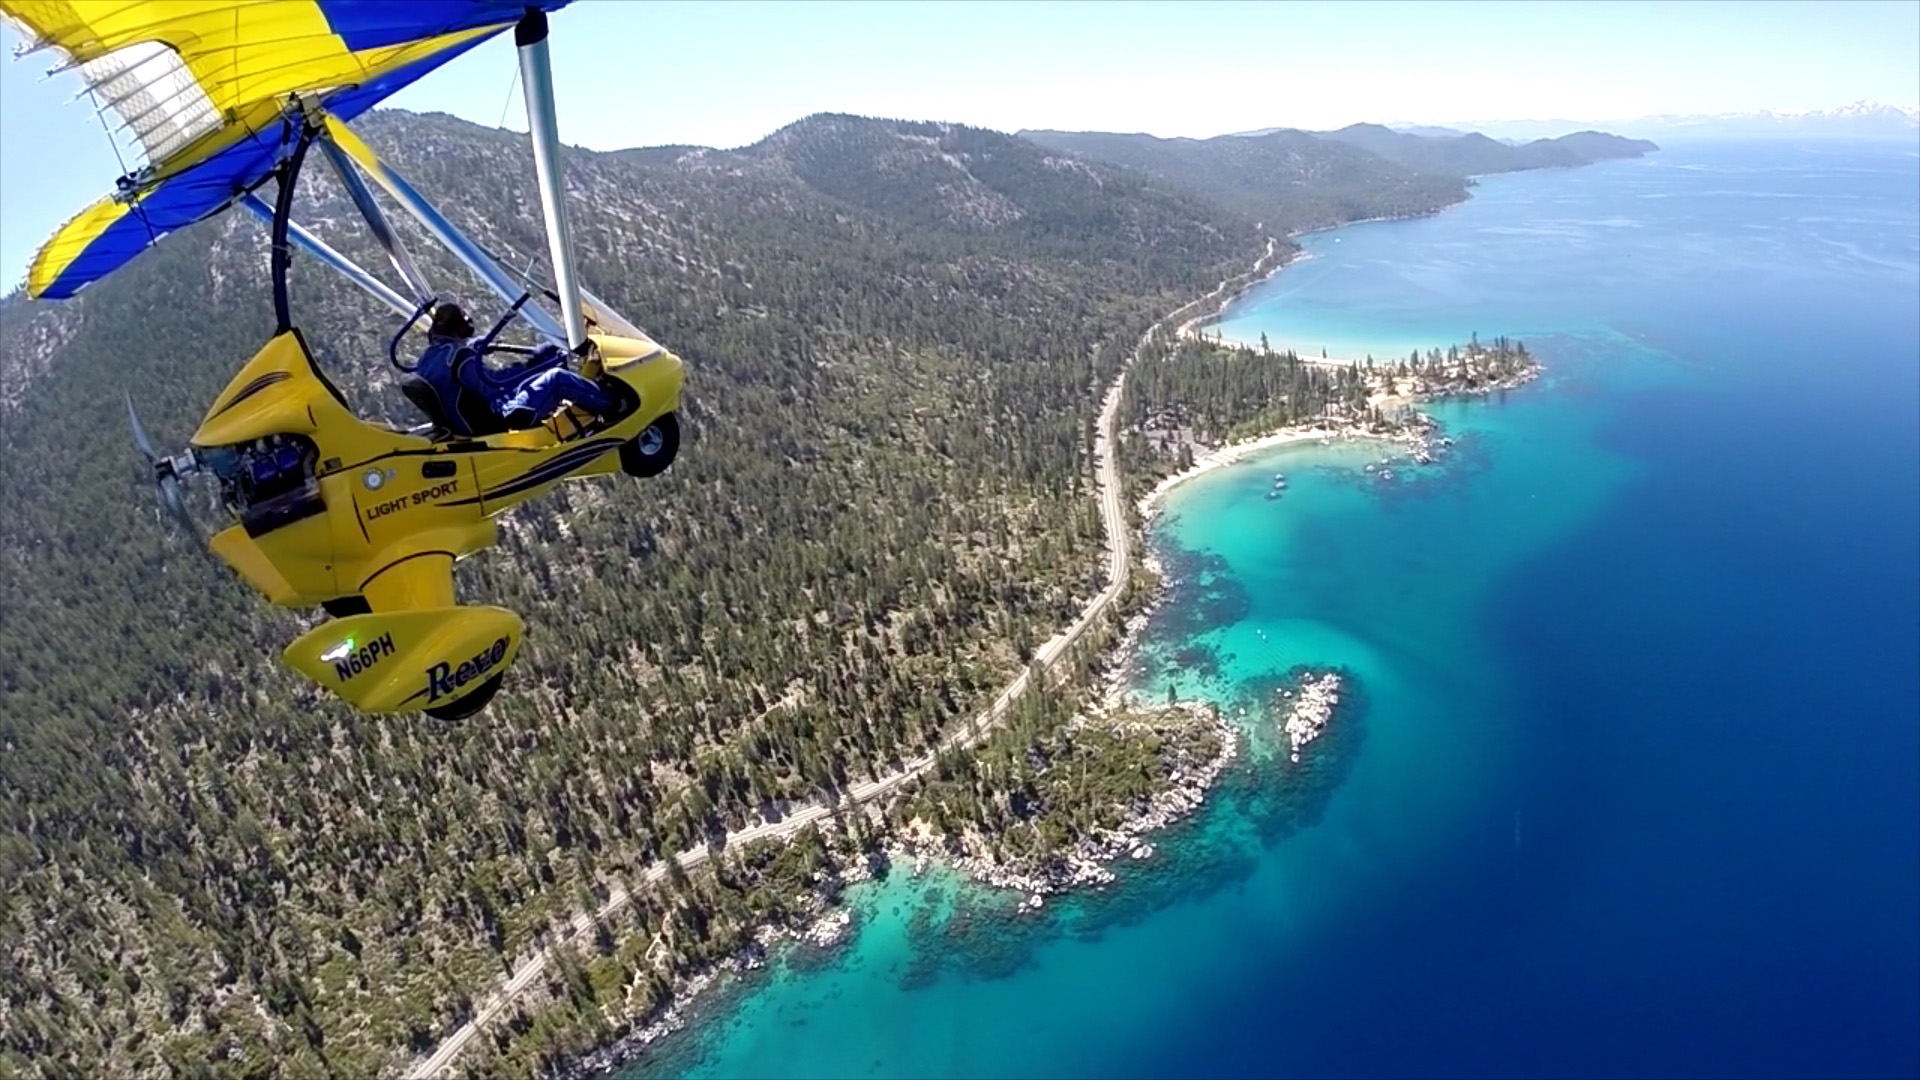 Hang Gliding above Lake Tahoe East Shore Zephyr Cove